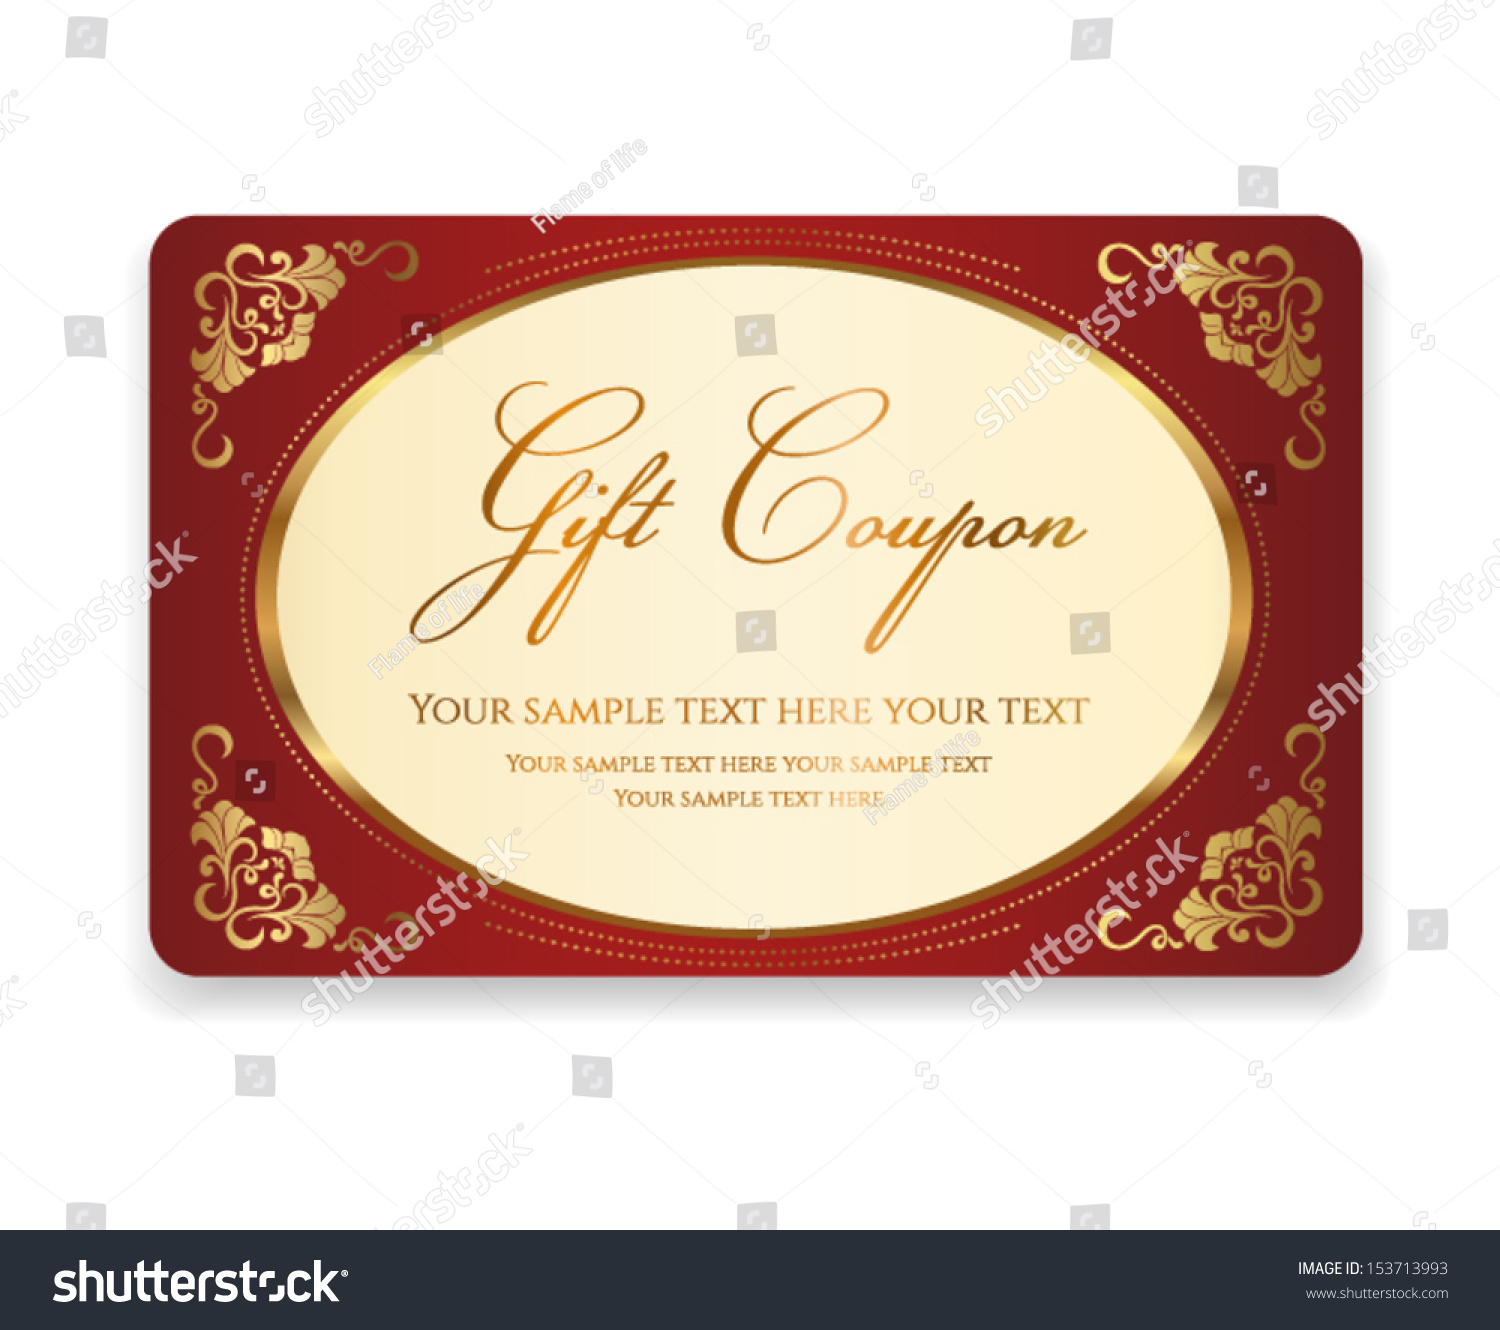 t coupon t card discount card stock vector